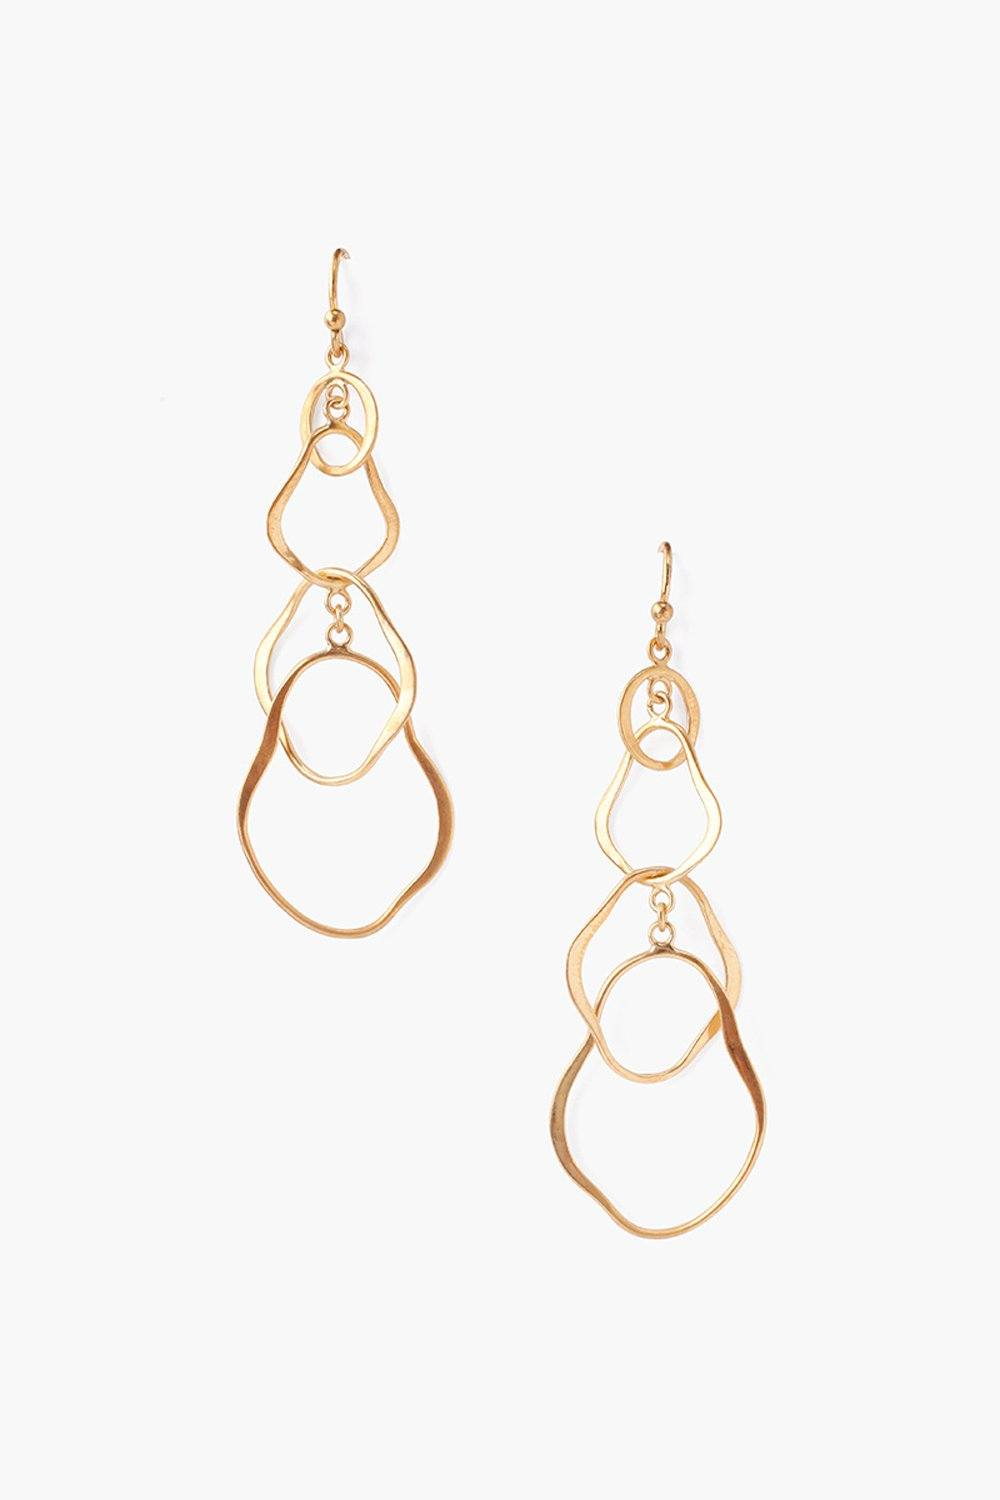 Yellow Gold Tiered Matisse Earrings